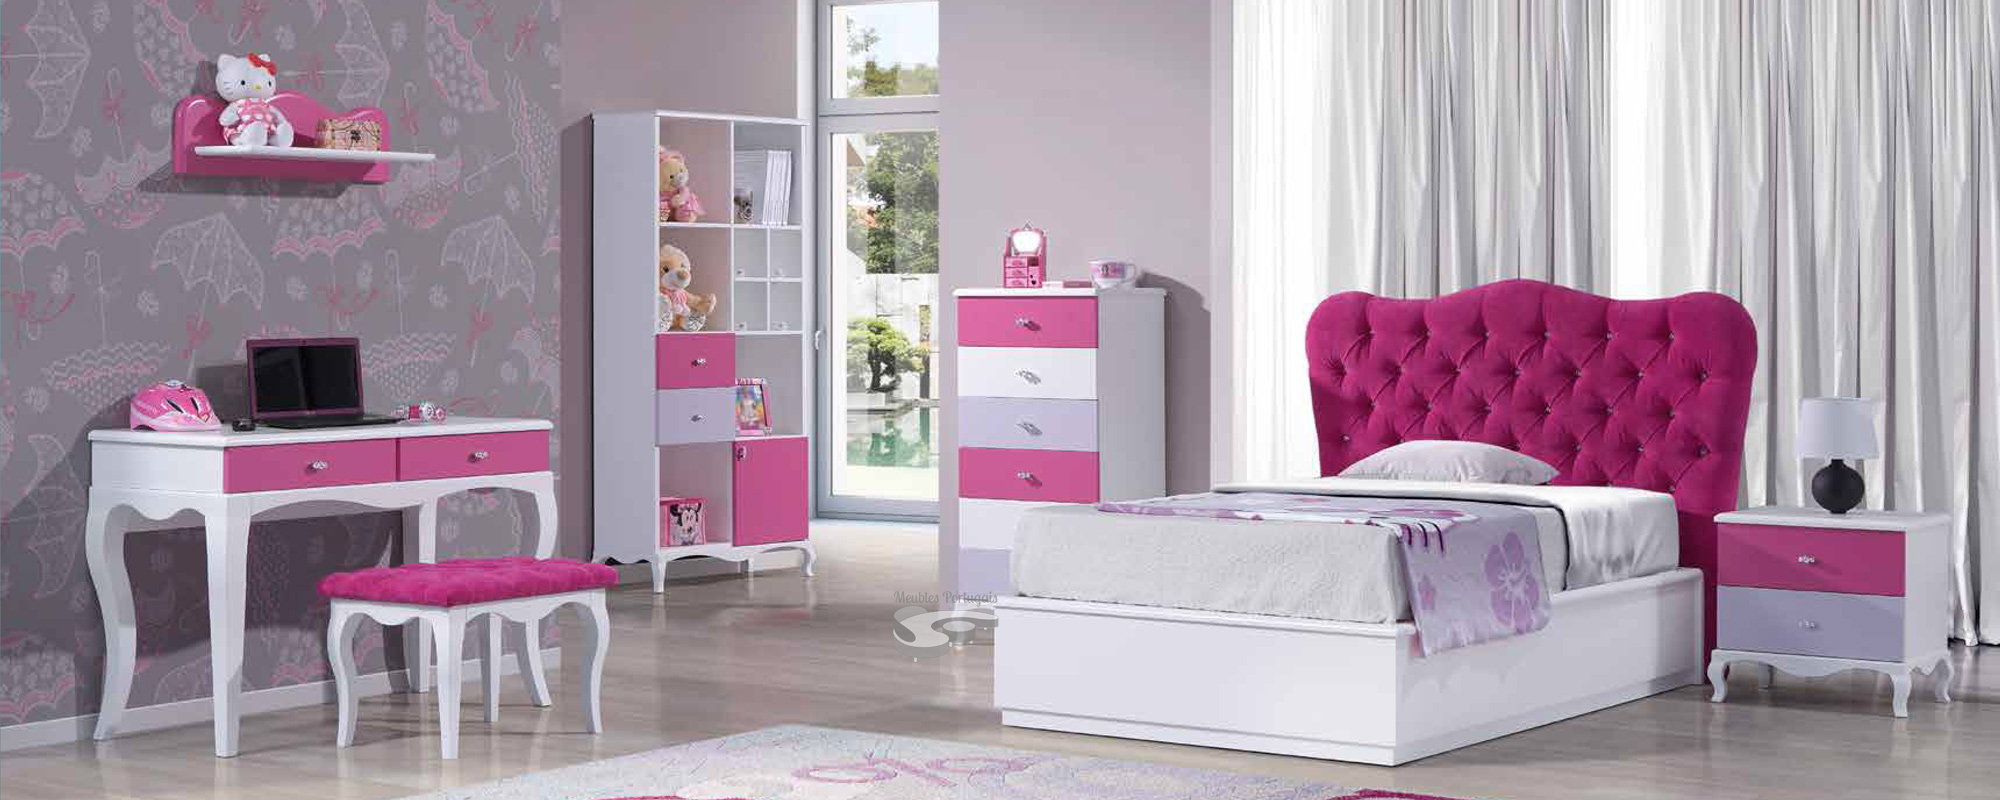 meubles portugal decoration salon de the meubles made in portugal meubles design meubles. Black Bedroom Furniture Sets. Home Design Ideas